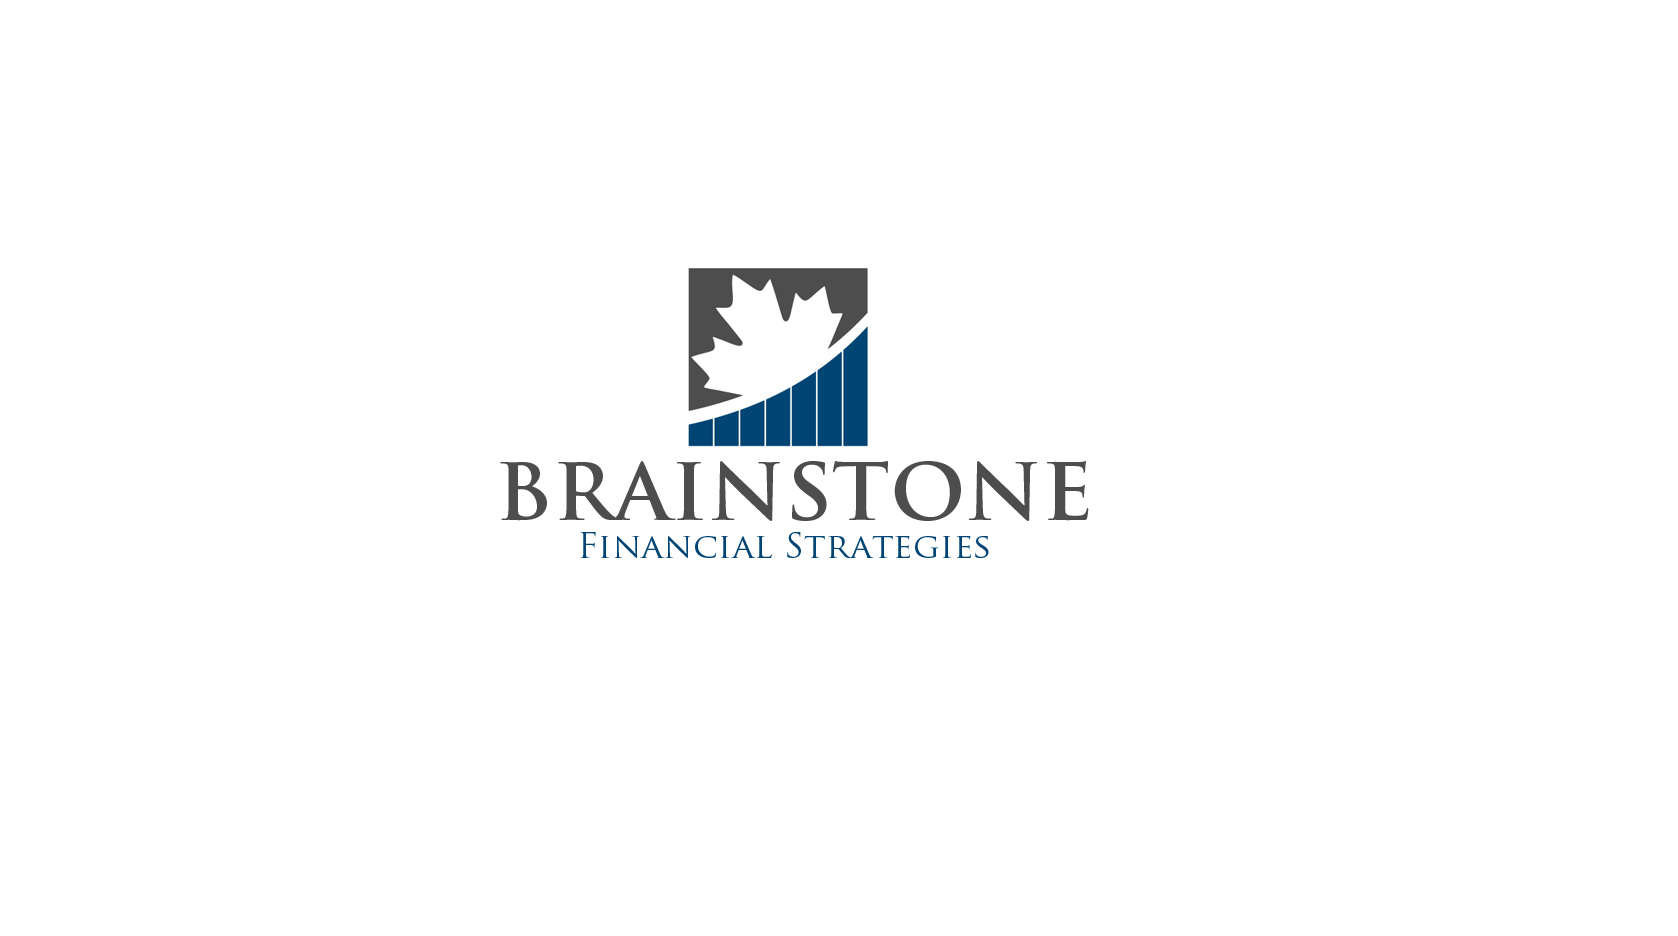 Logo Design by Mehtab Khan - Entry No. 181 in the Logo Design Contest Inspiring Logo Design for Branstone Financial Strategies.